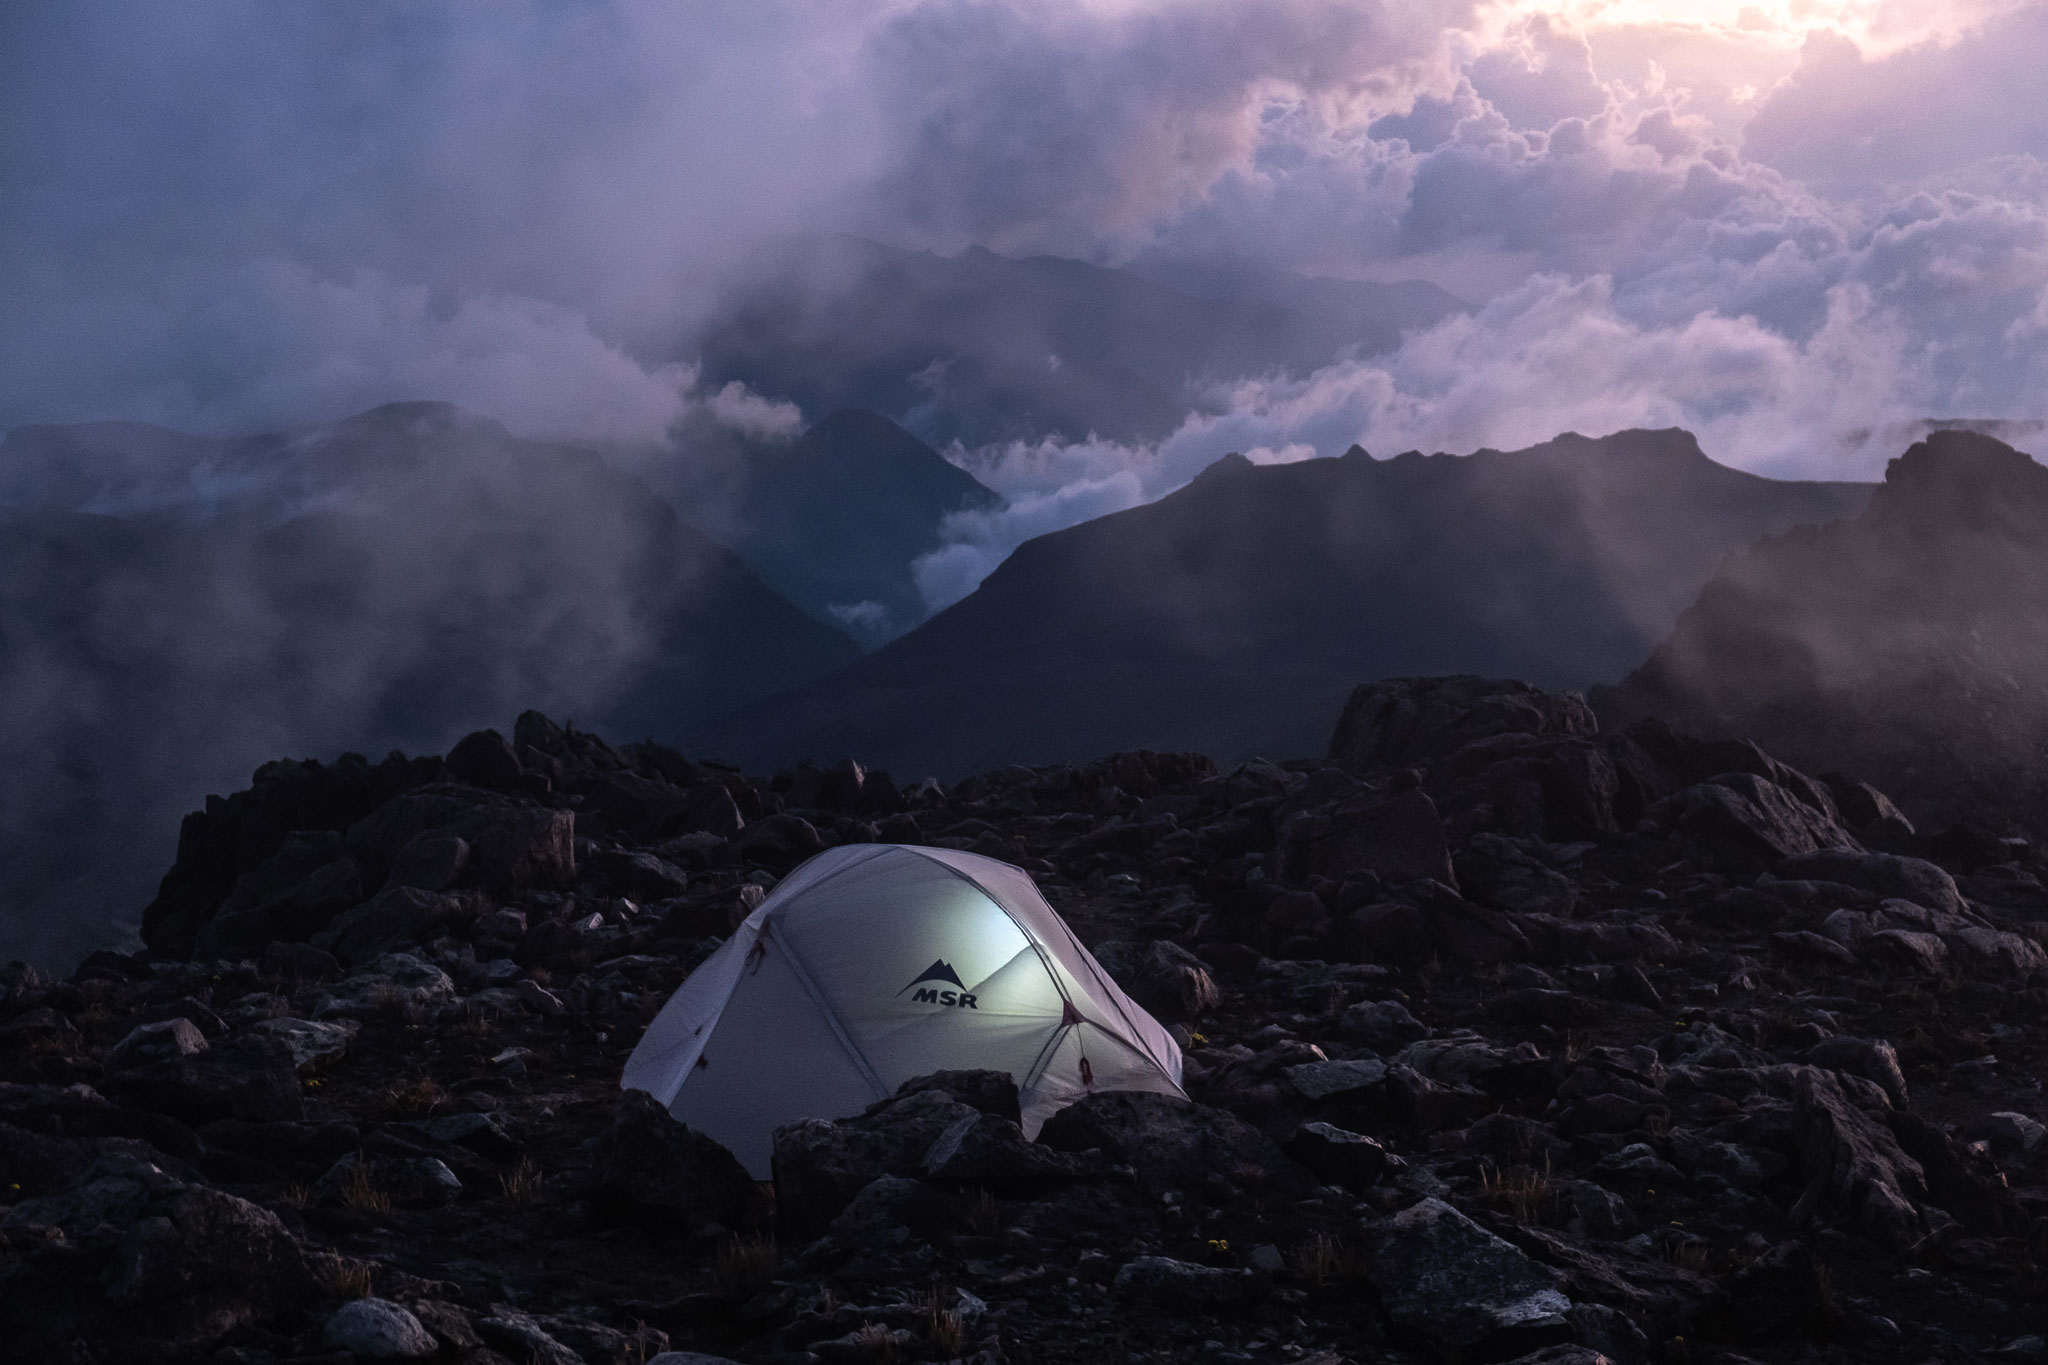 CAMPING IN REMOTE PART OF THE ANDES